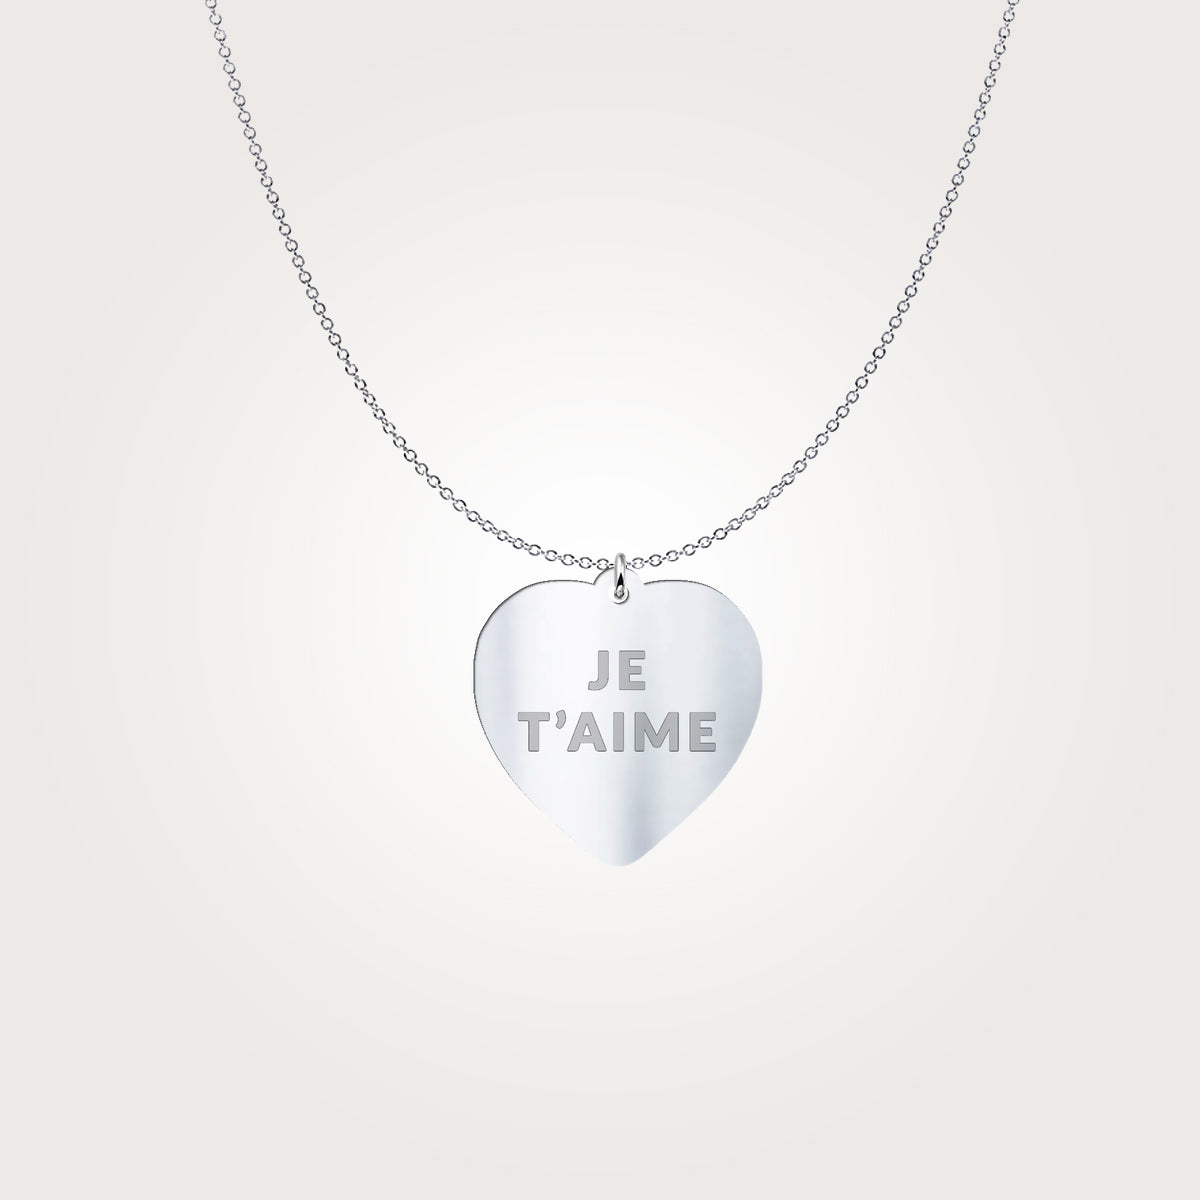 Je T'aime Conversation Heart Necklace by ALLEZ ELIZABETH